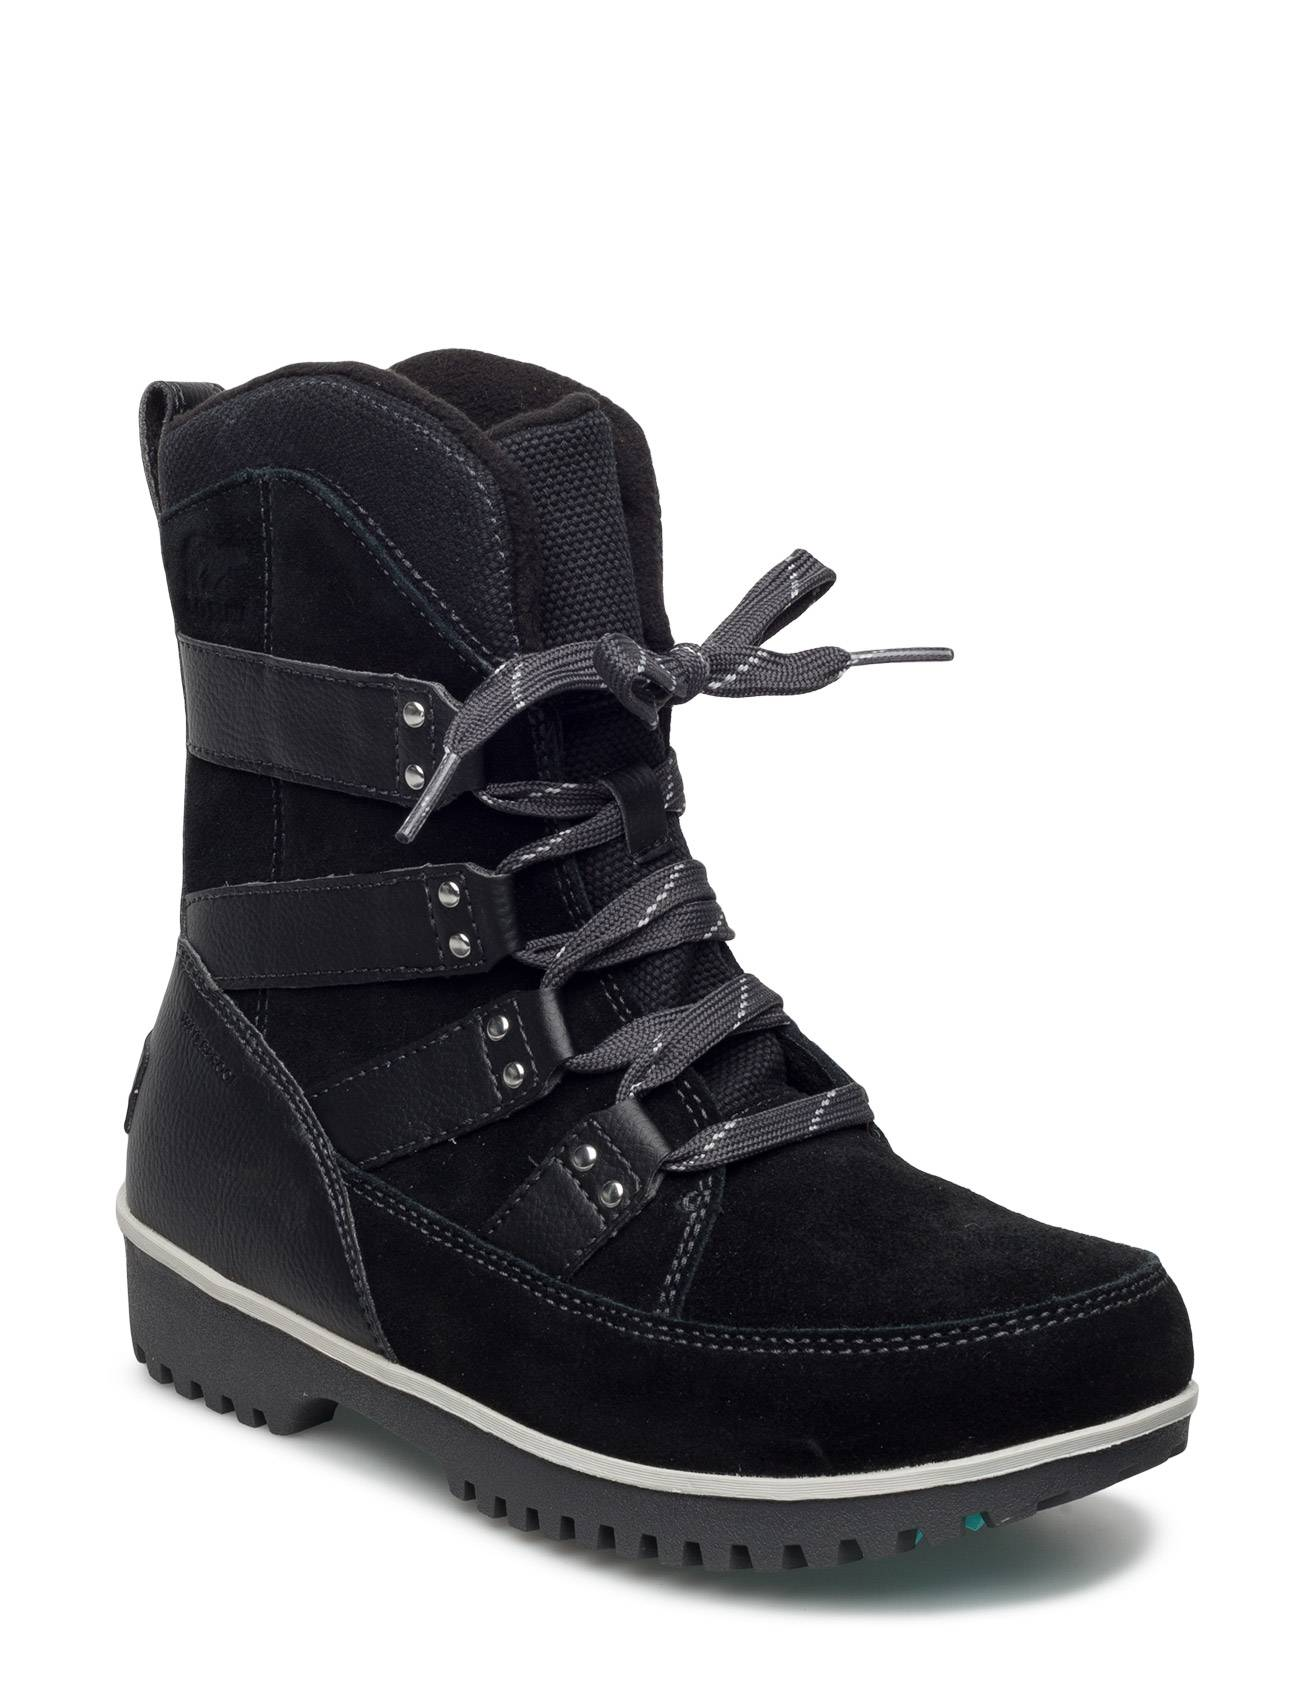 Sorel Youth Meadow Lace